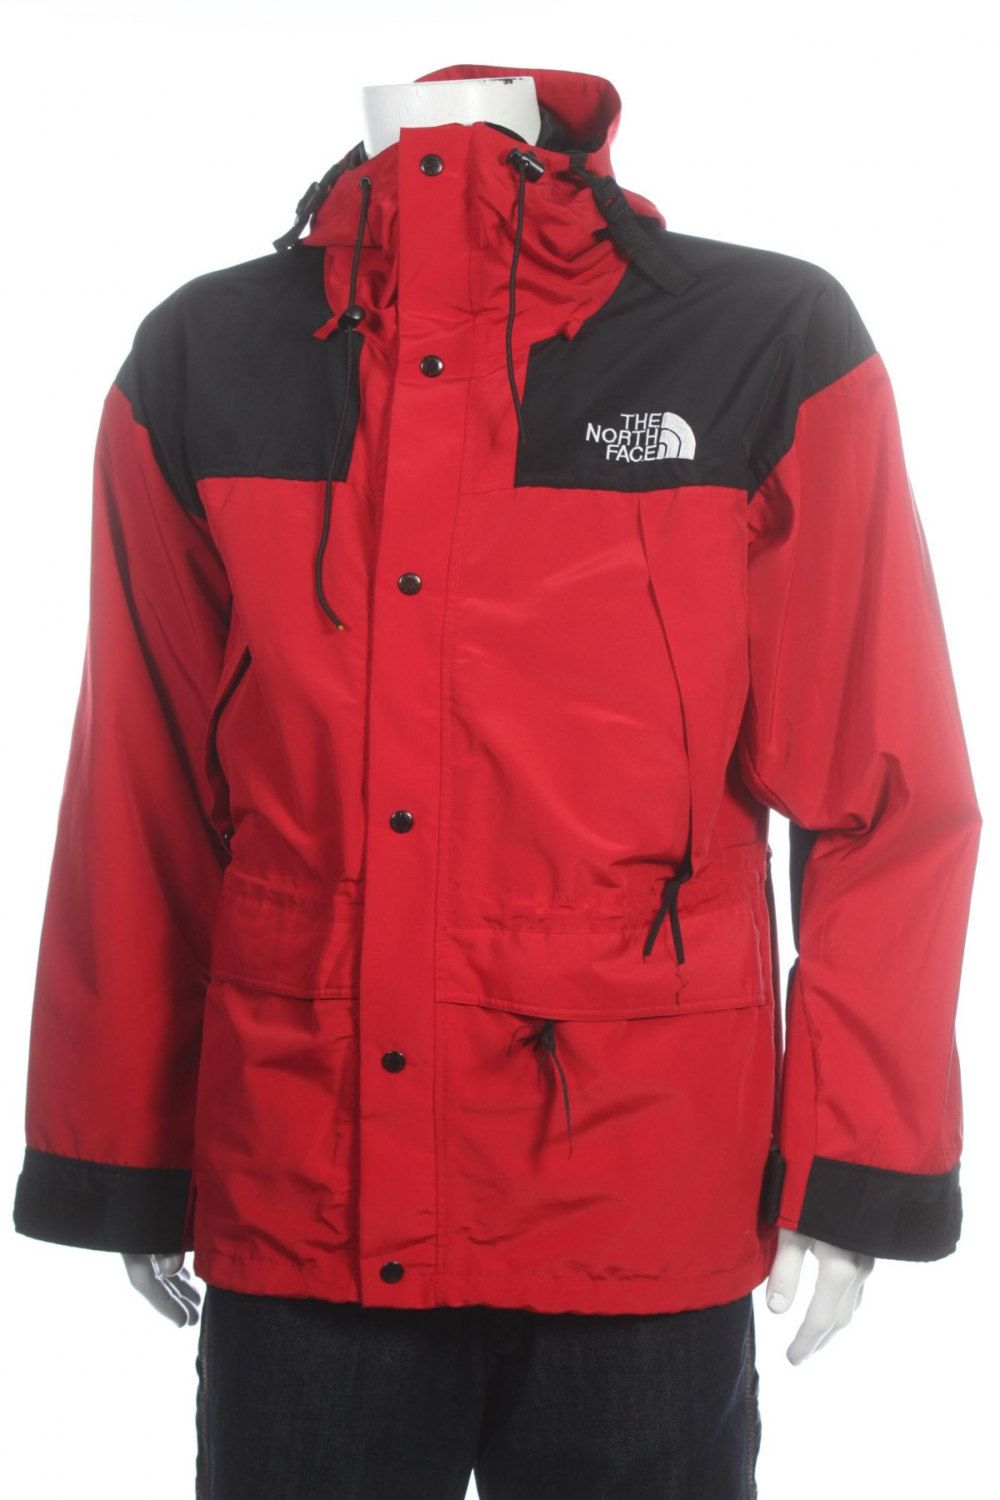 78698ef02 Vintage 90s The North Face Insulated Hydroseal Polyurethane Mountain ...